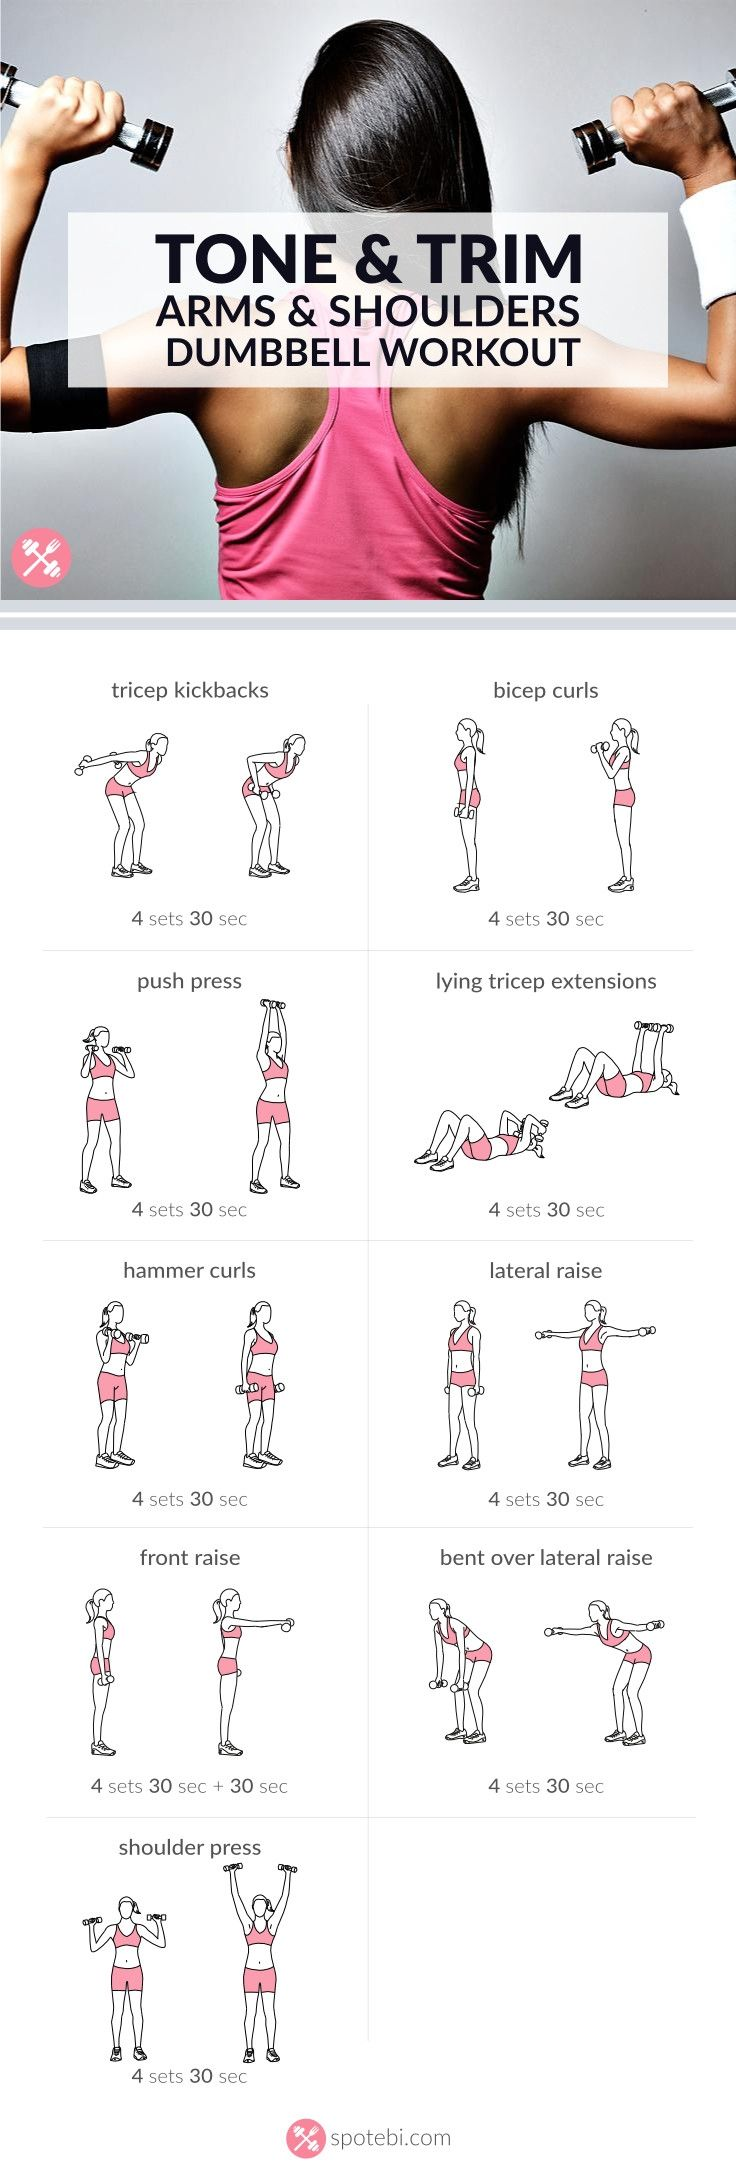 Get rid of arm fat and tone sleek muscles with the help of these dumbbell exercises. Sculpt, tone and firm your biceps, triceps and shoulders in no time! http://www.spotebi.com/workout-routines/upper-body-dumbbell-exercises-biceps-triceps-shoulders-workout/ #weightlossrecipes